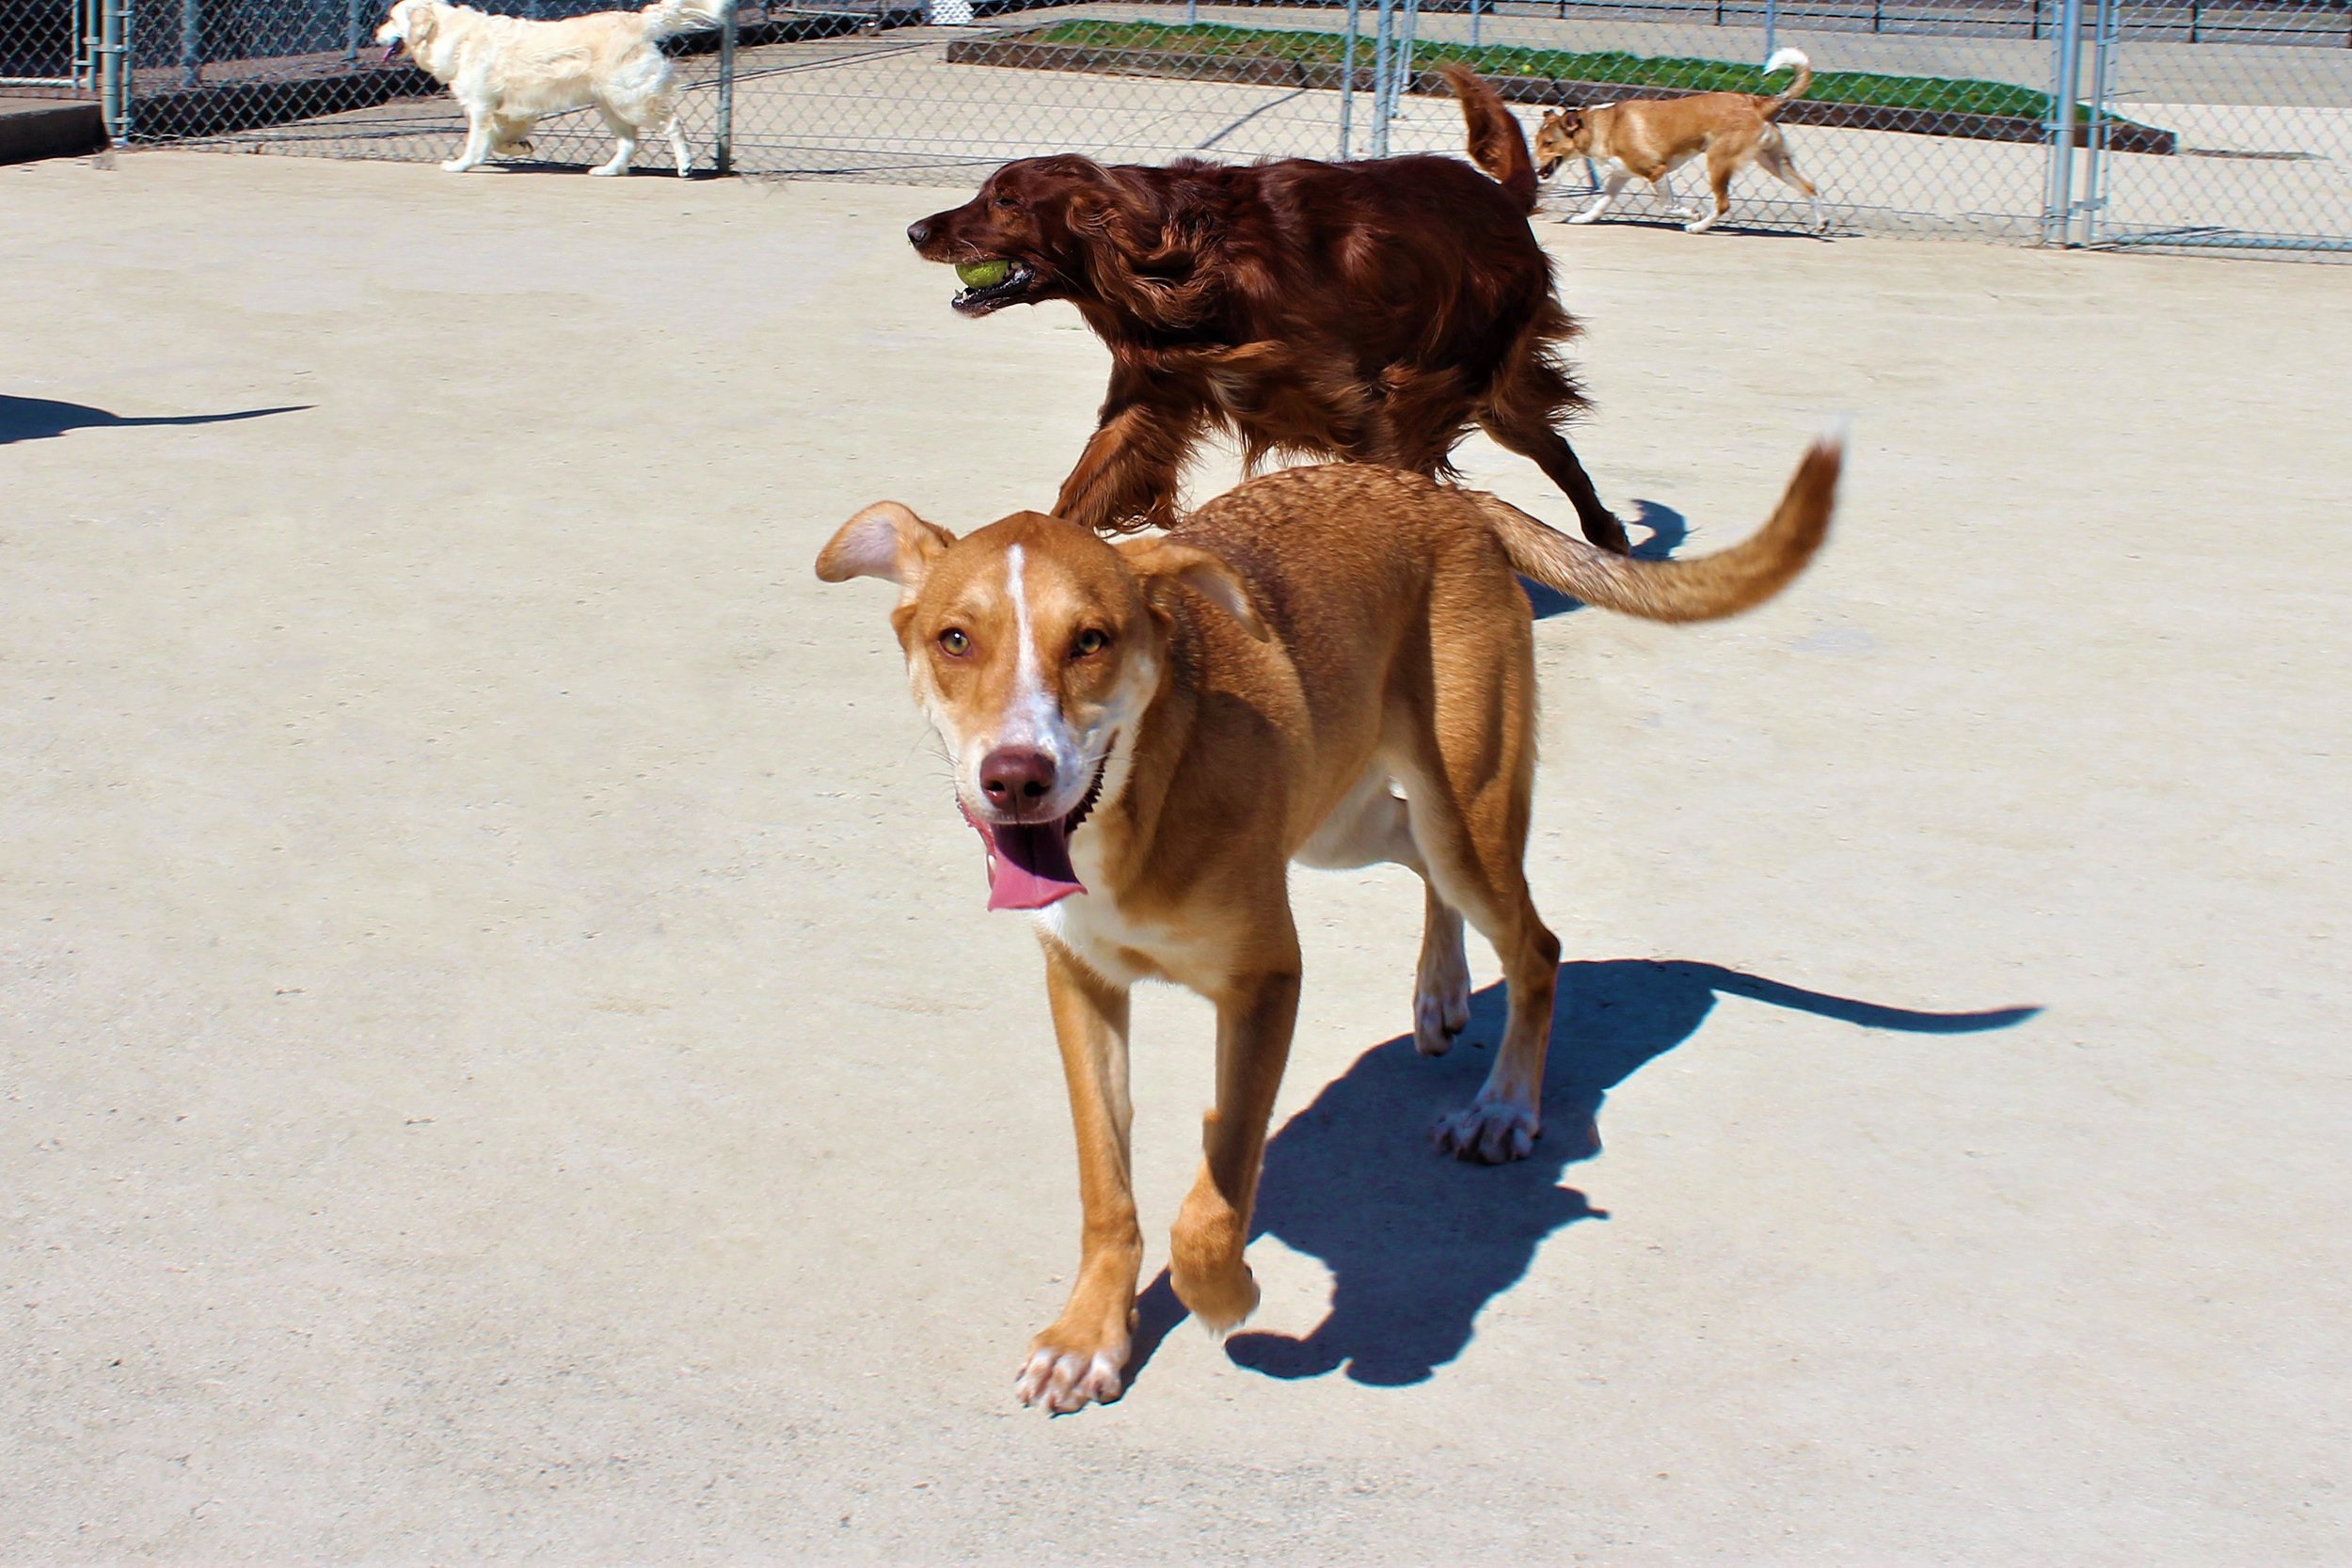 When Maddie is with her group she shines the brightest. All of her dog friends in daycare are as playful as she is. Her face says it all. This dog is happy to be with her friends.